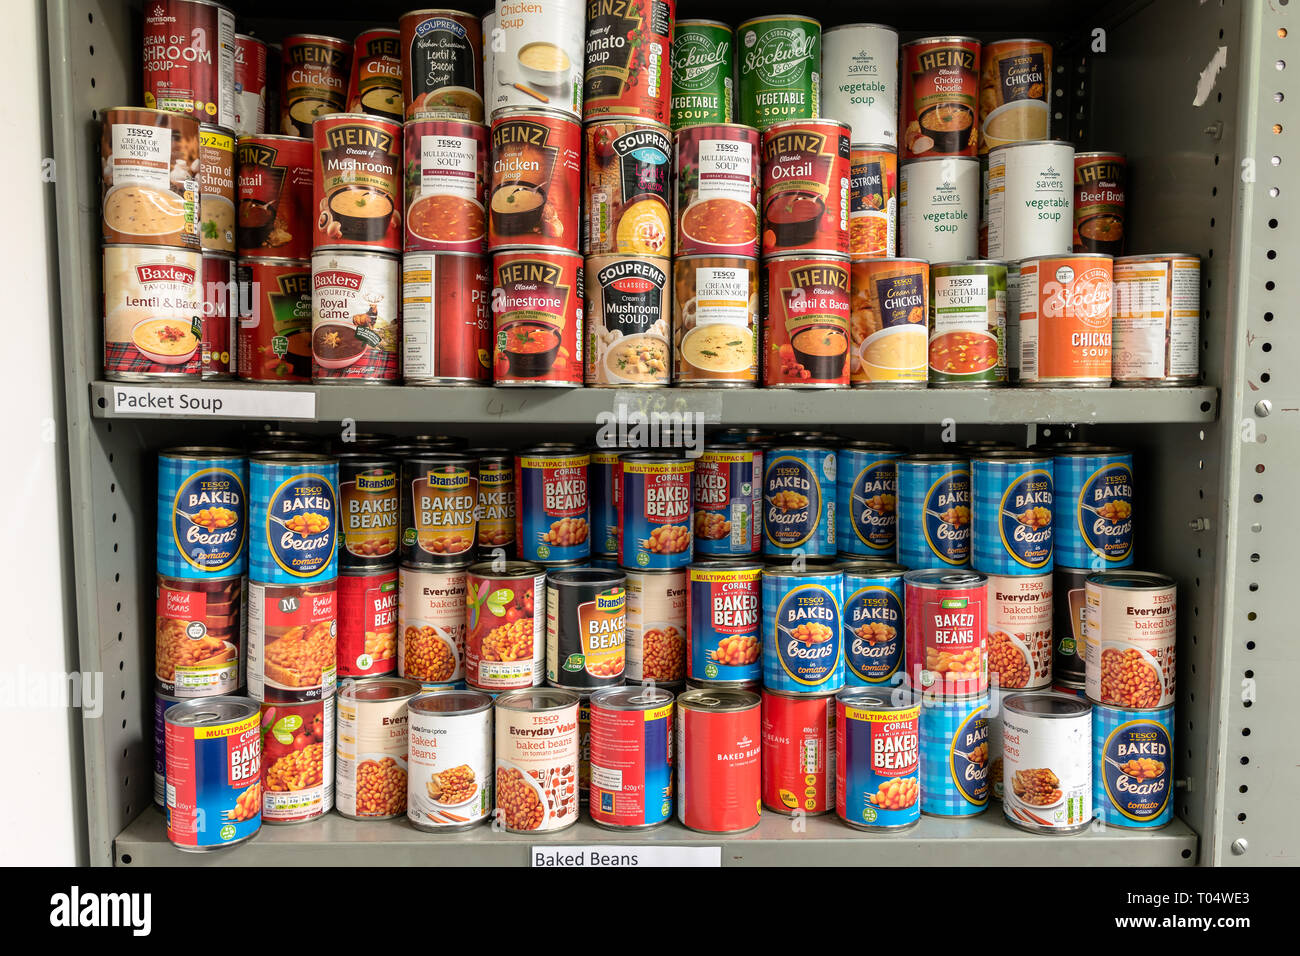 Storage shelves in a Trussell Trust local church food bank warehouse in the UK showing tins of baked beans and soup ready for food parcels - Stock Image